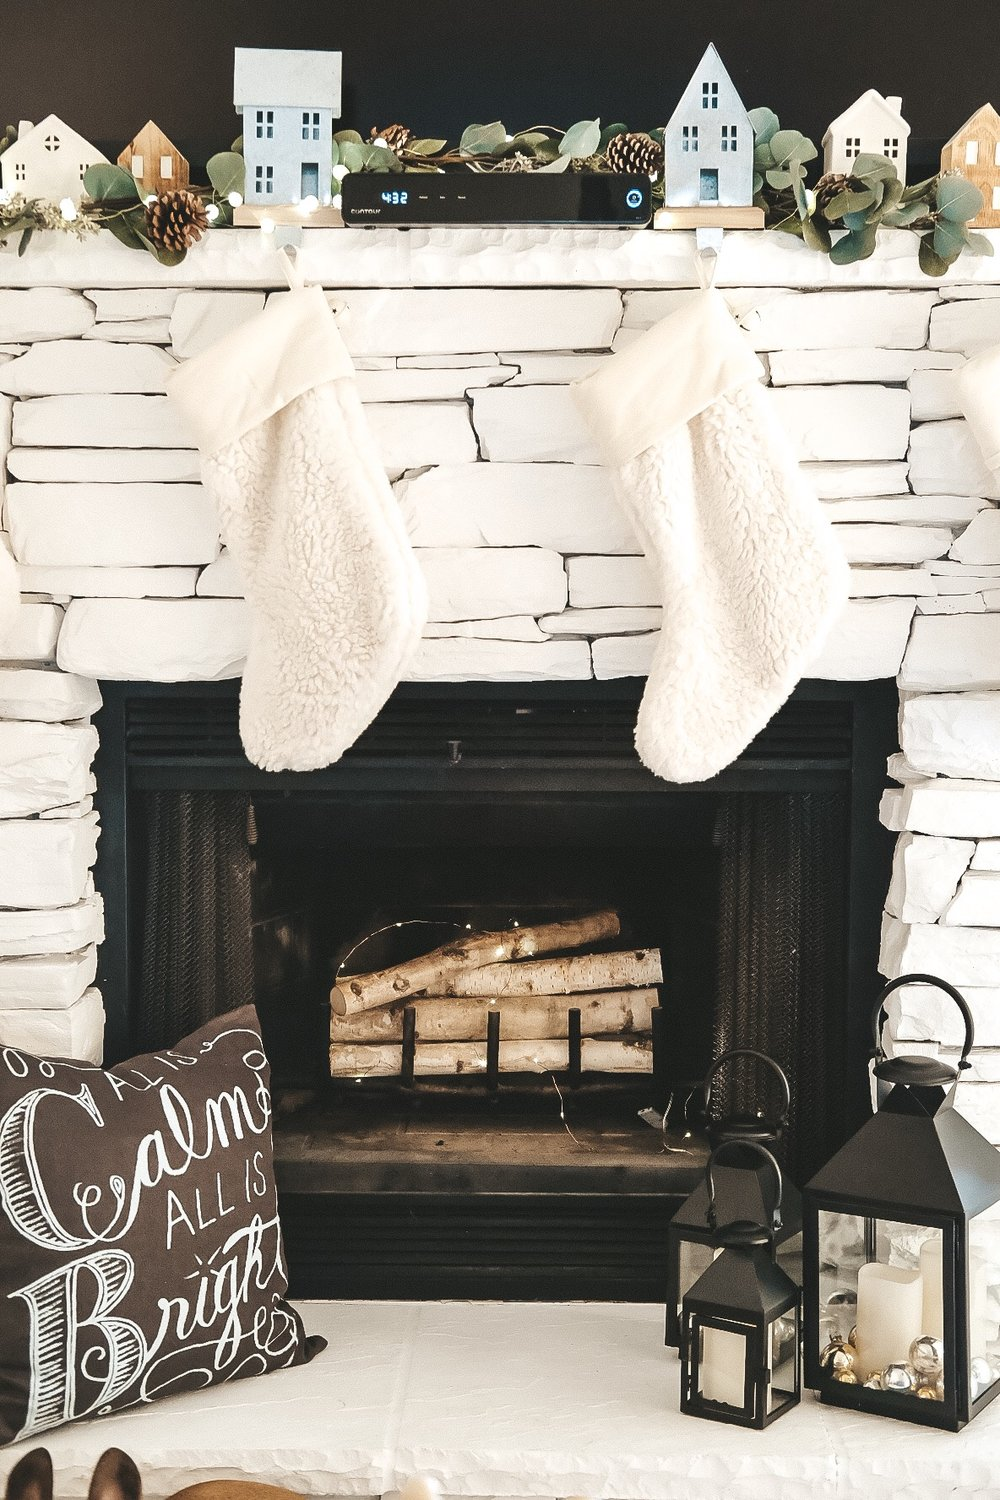 White Christmas decor.  Mantle with faux fur stockings and galvanized houses.